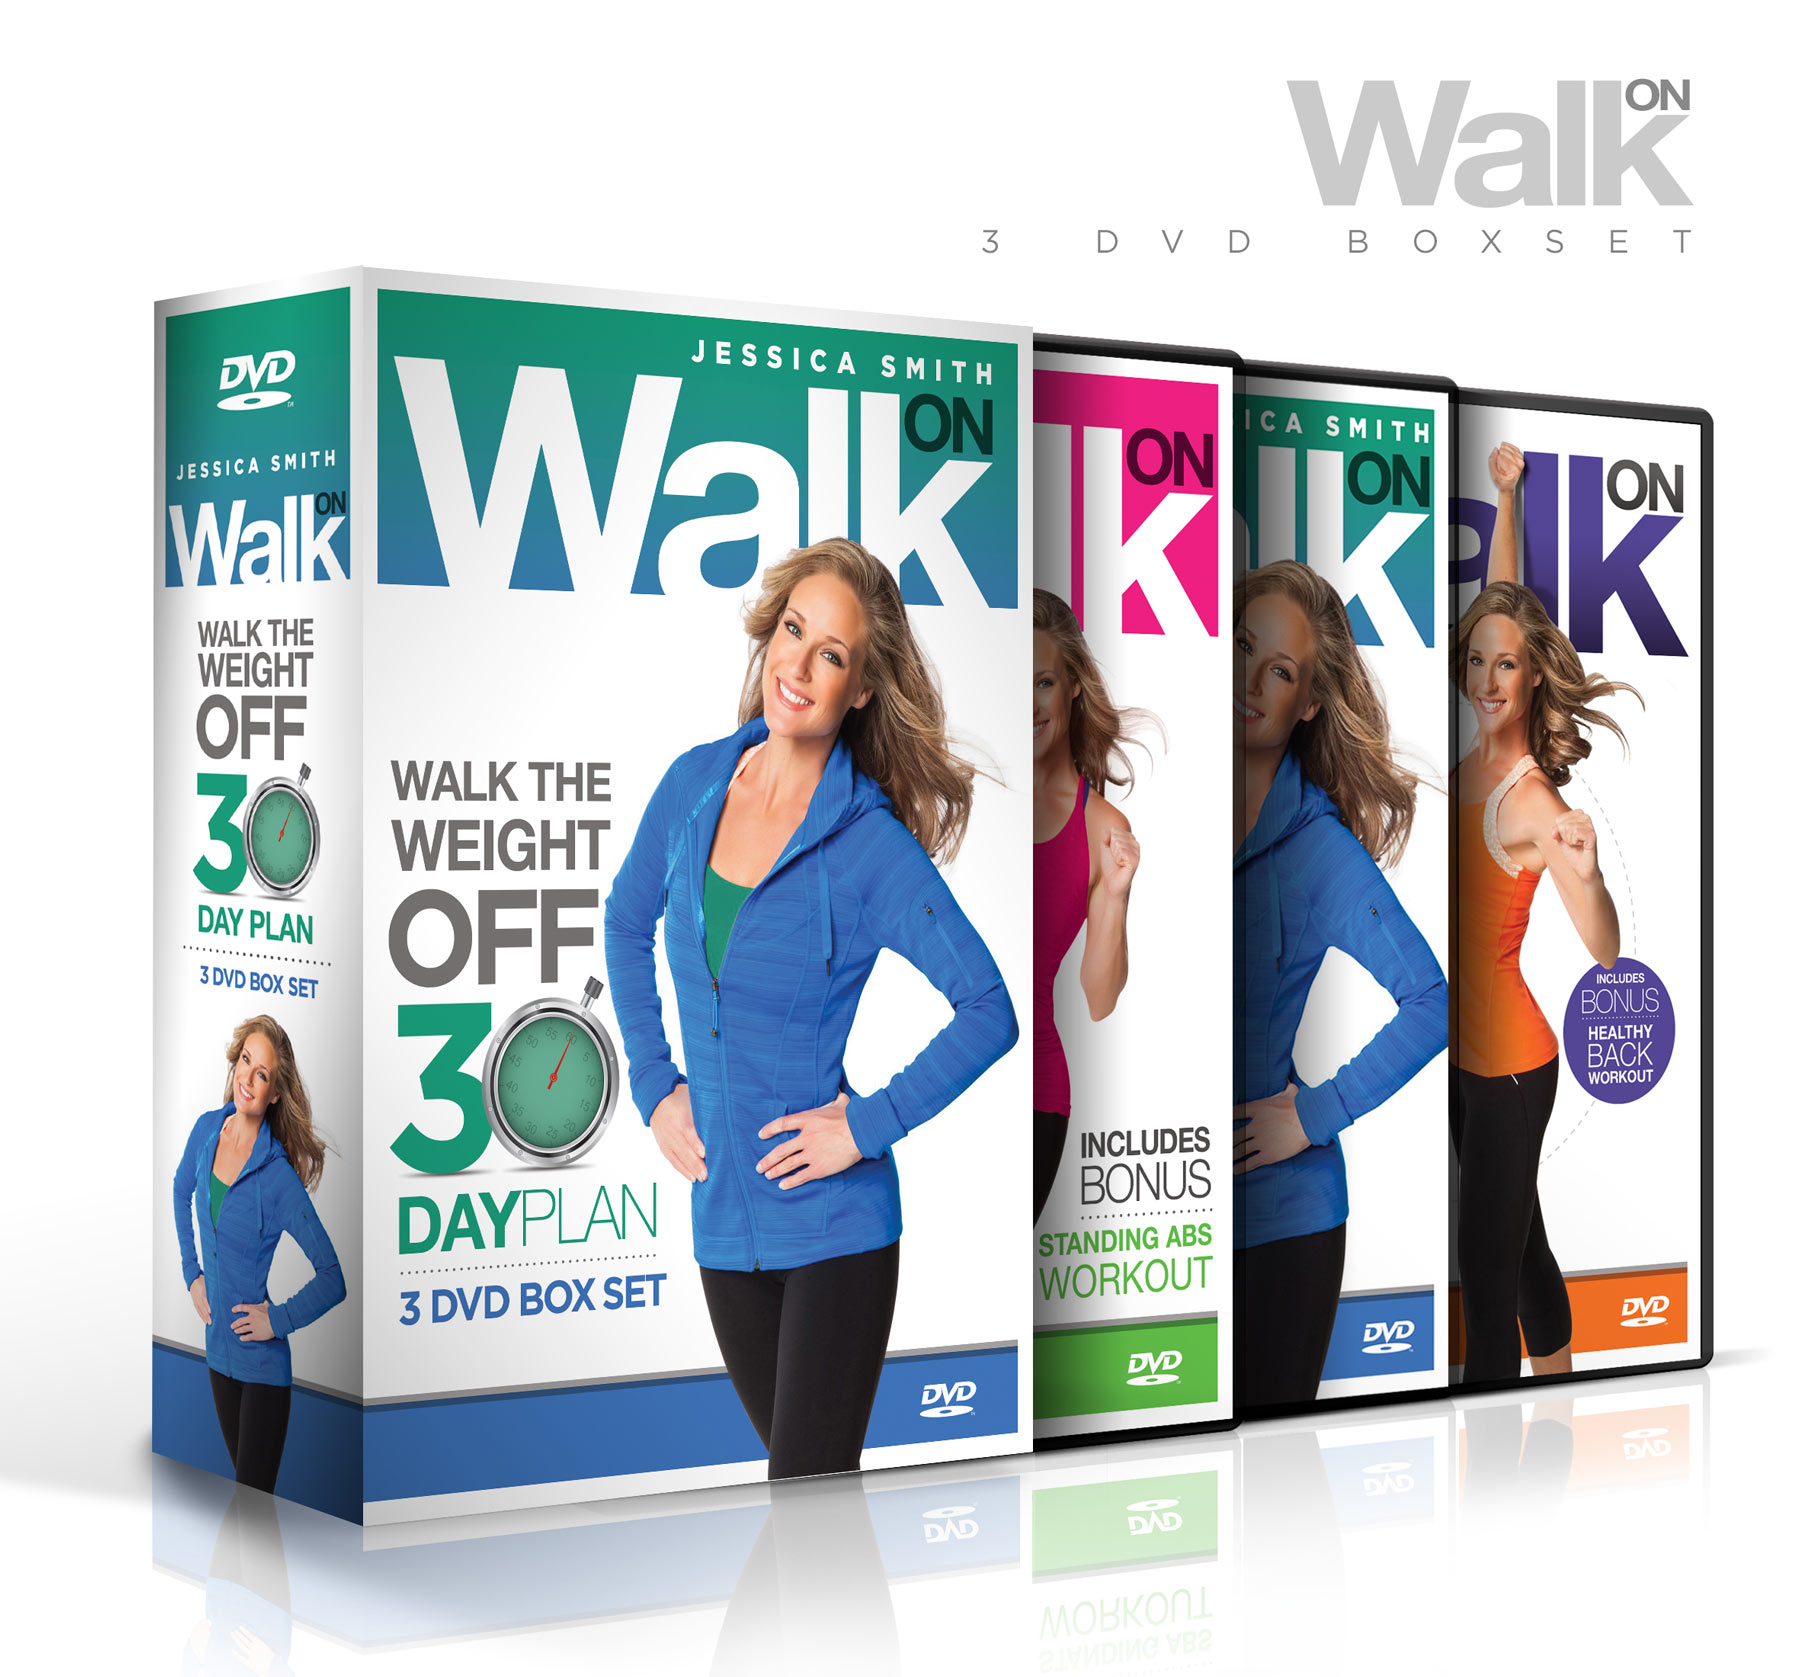 Jessica Smith Walk On: Walk The Weight Off 30 Day Plan